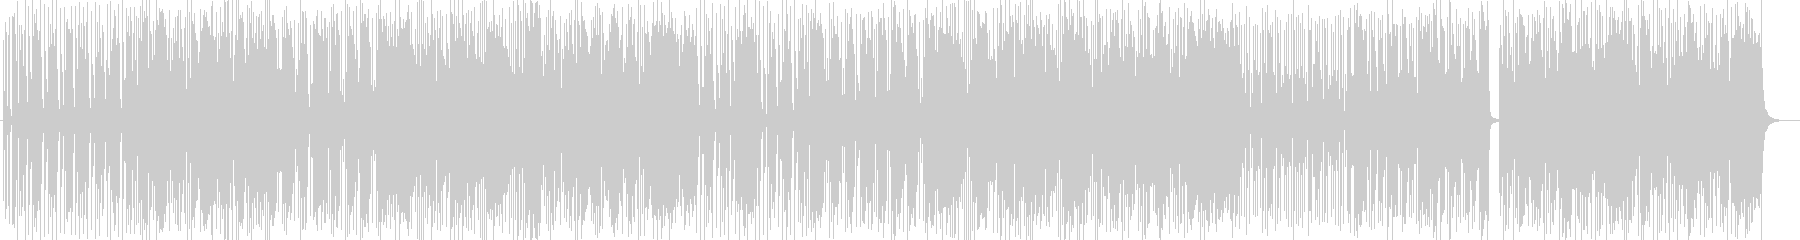 Pop and fancy synthesizer songs's unreproduced waveform